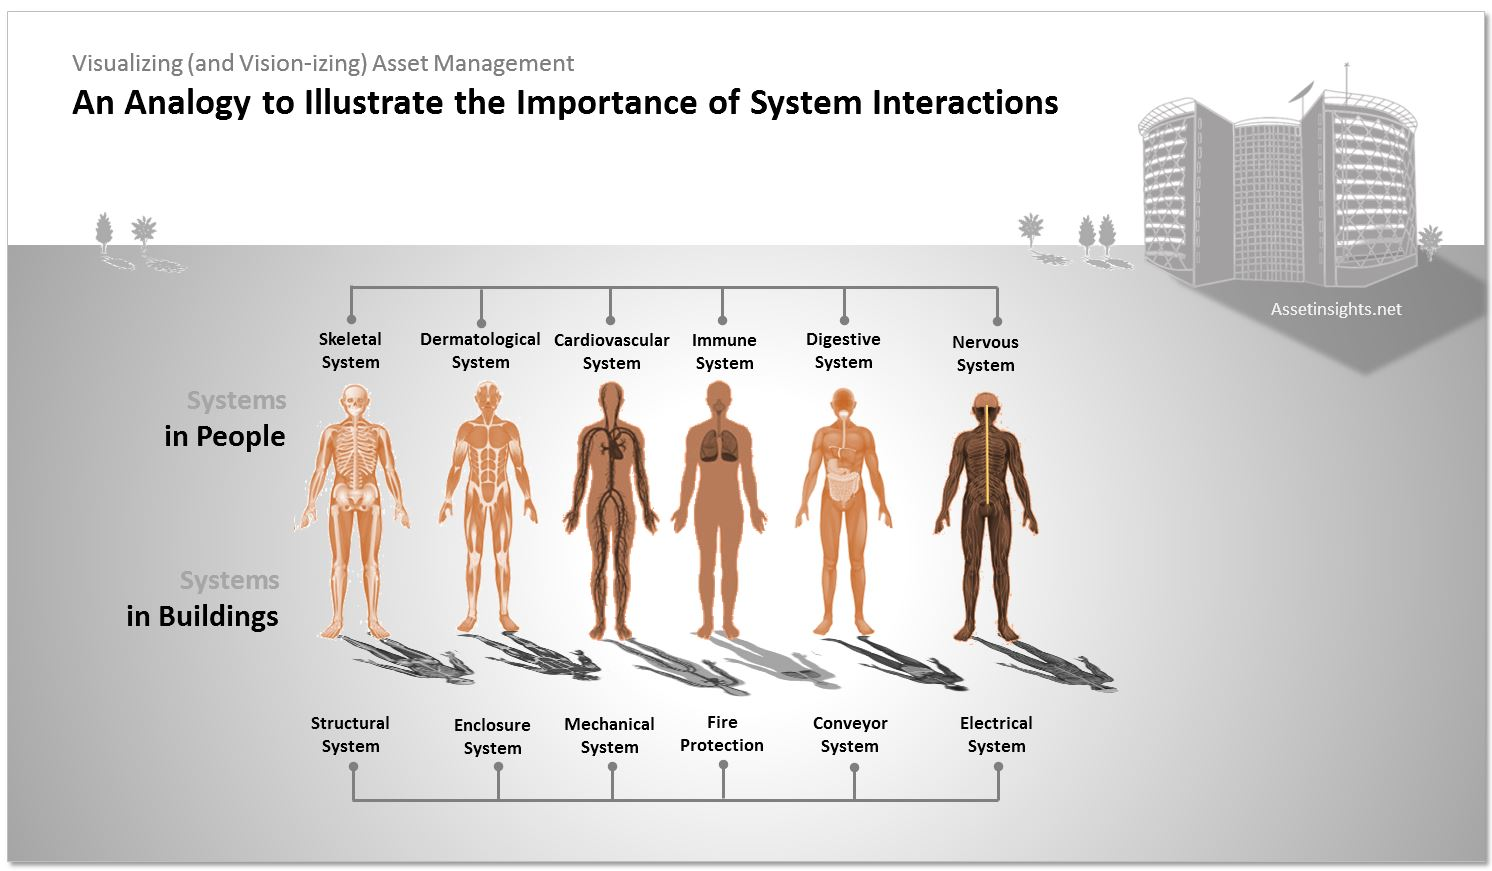 Human physiology as an analogy to illustrate the importance of system interaction.